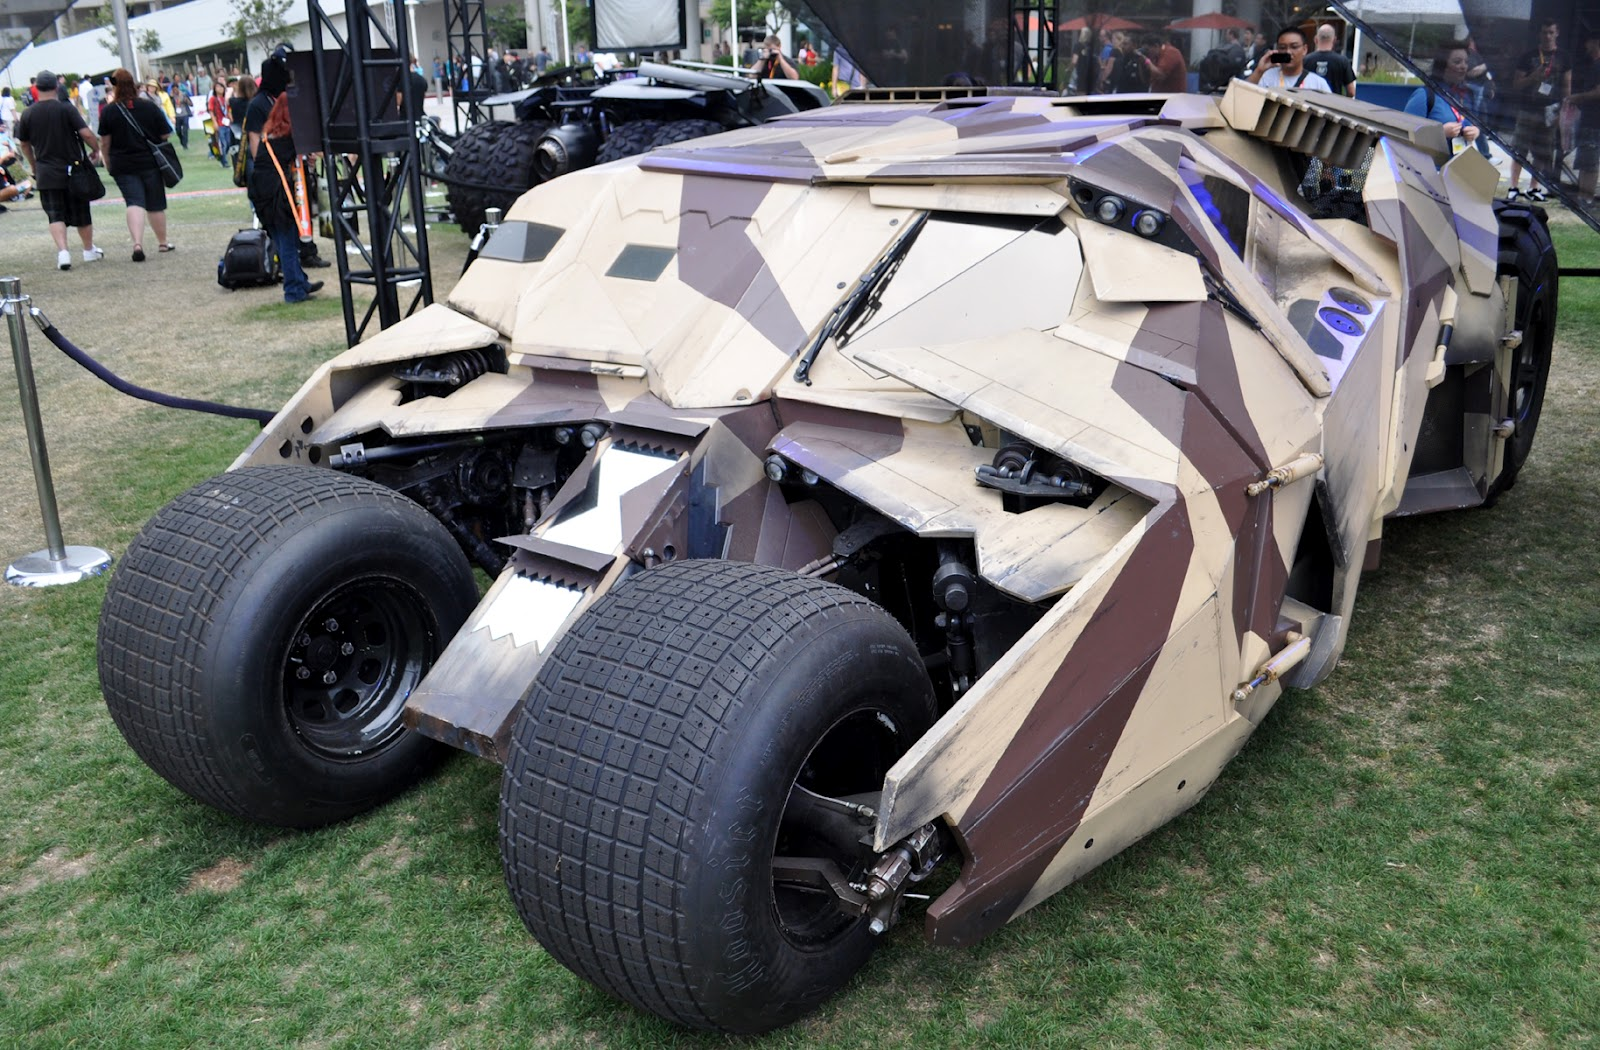 Just A Car Guy The Camouflage Tumblr Batman Vehicle At